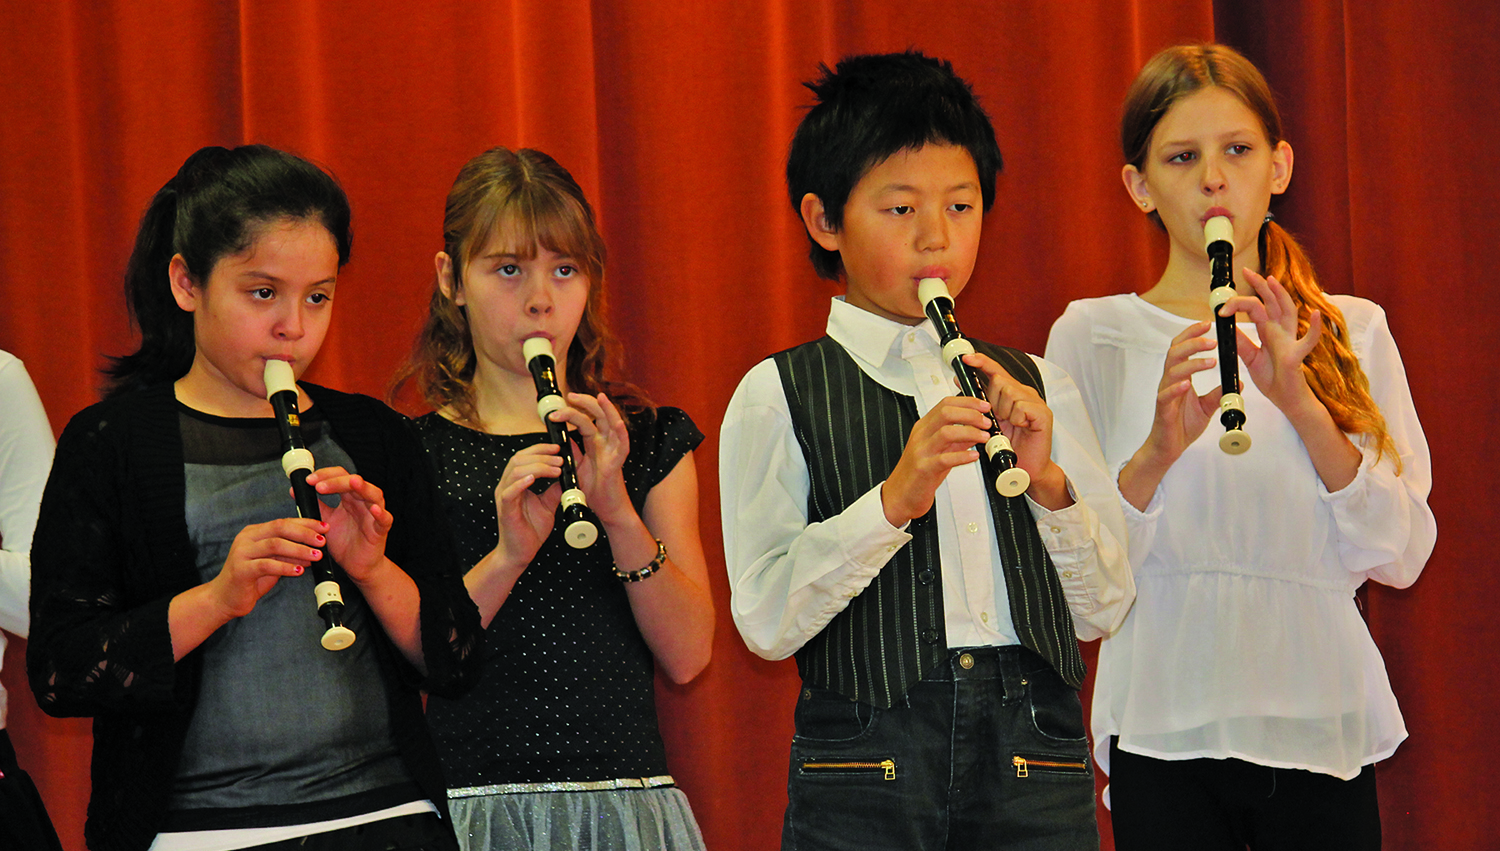 Flute players cropped